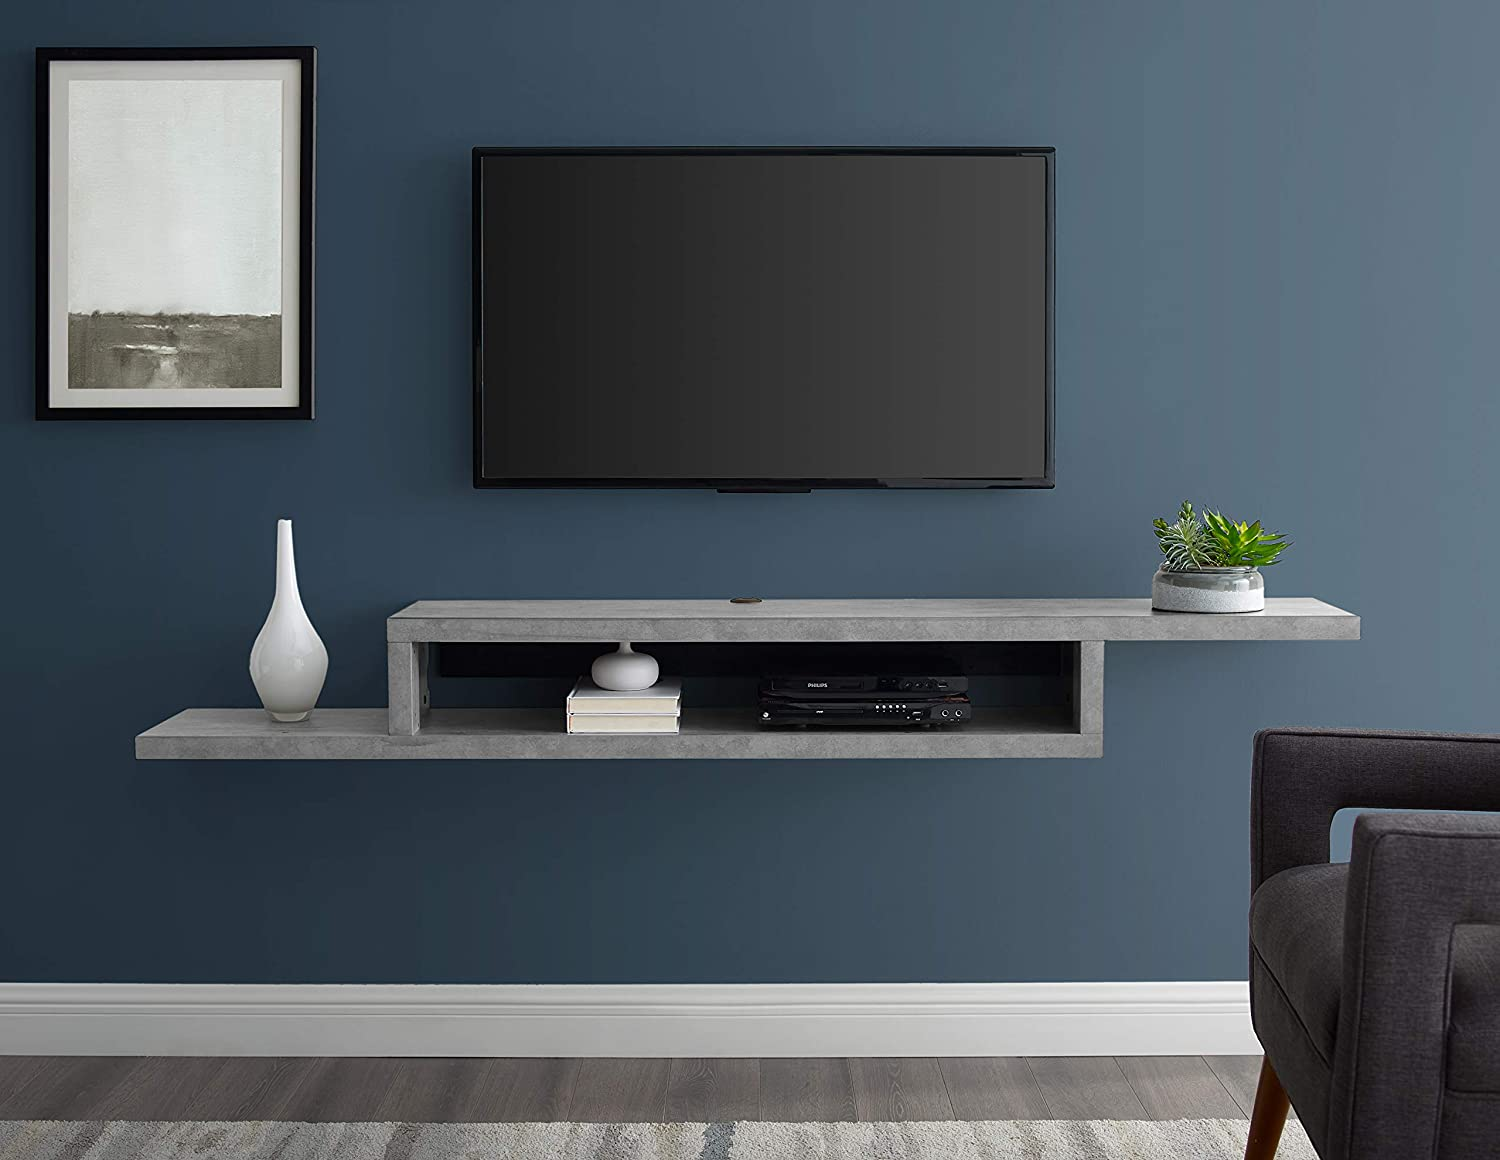 Martin Furniture Asymmetrical Floating Wall Mounted Tv Console 72inch Stone Gray 72 Amazon In Home Kitchen